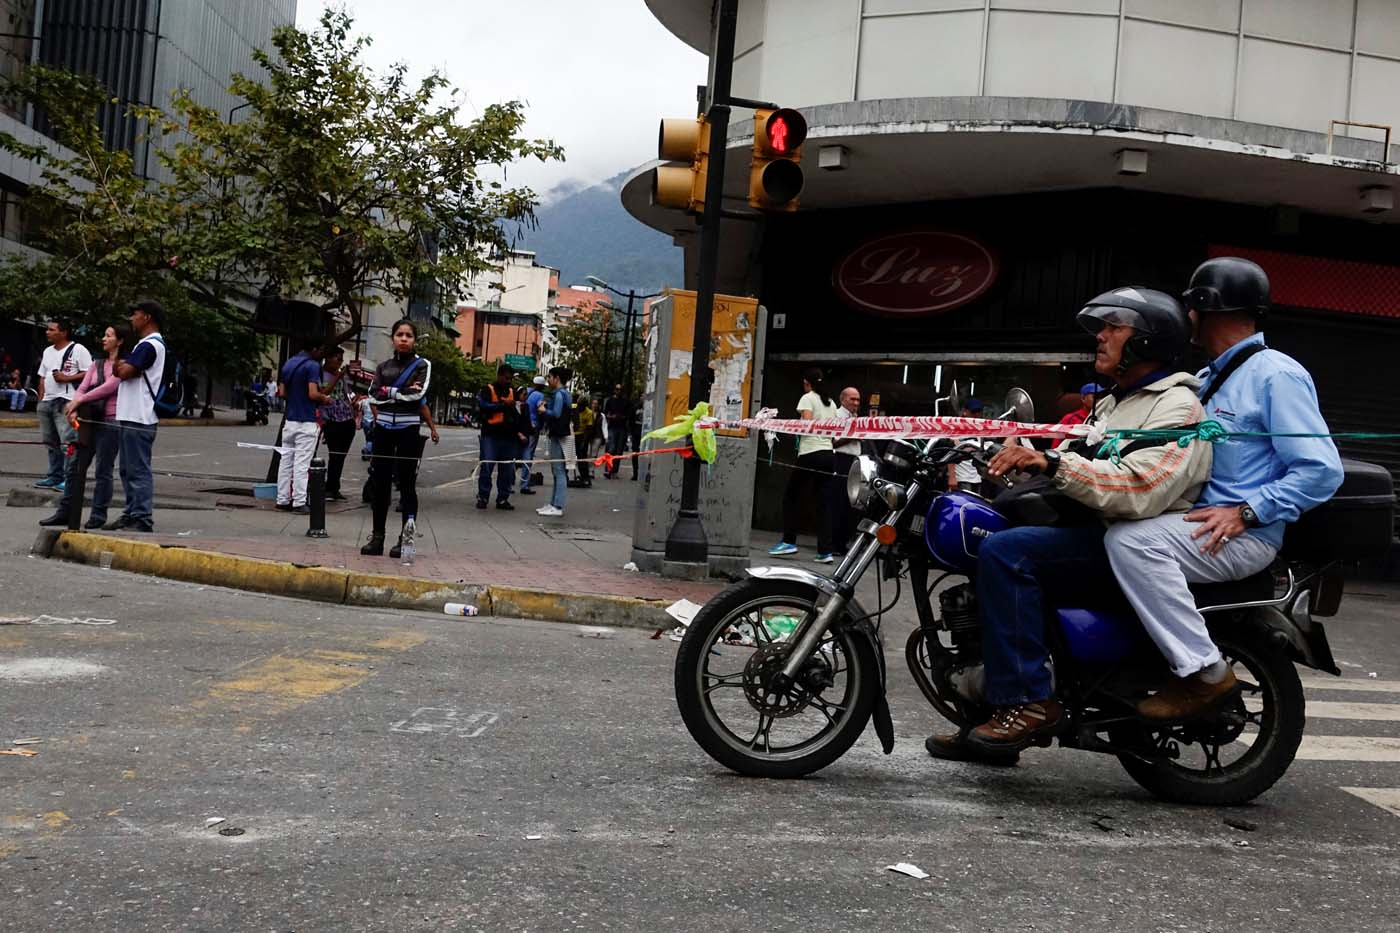 A motorcyclist stops next to ropes used to block the streets during a protest against Venezuelan President Nicolas Maduro's government in Caracas, Venezuela July 19, 2017. REUTERS/Carlos Garcia Rawlins